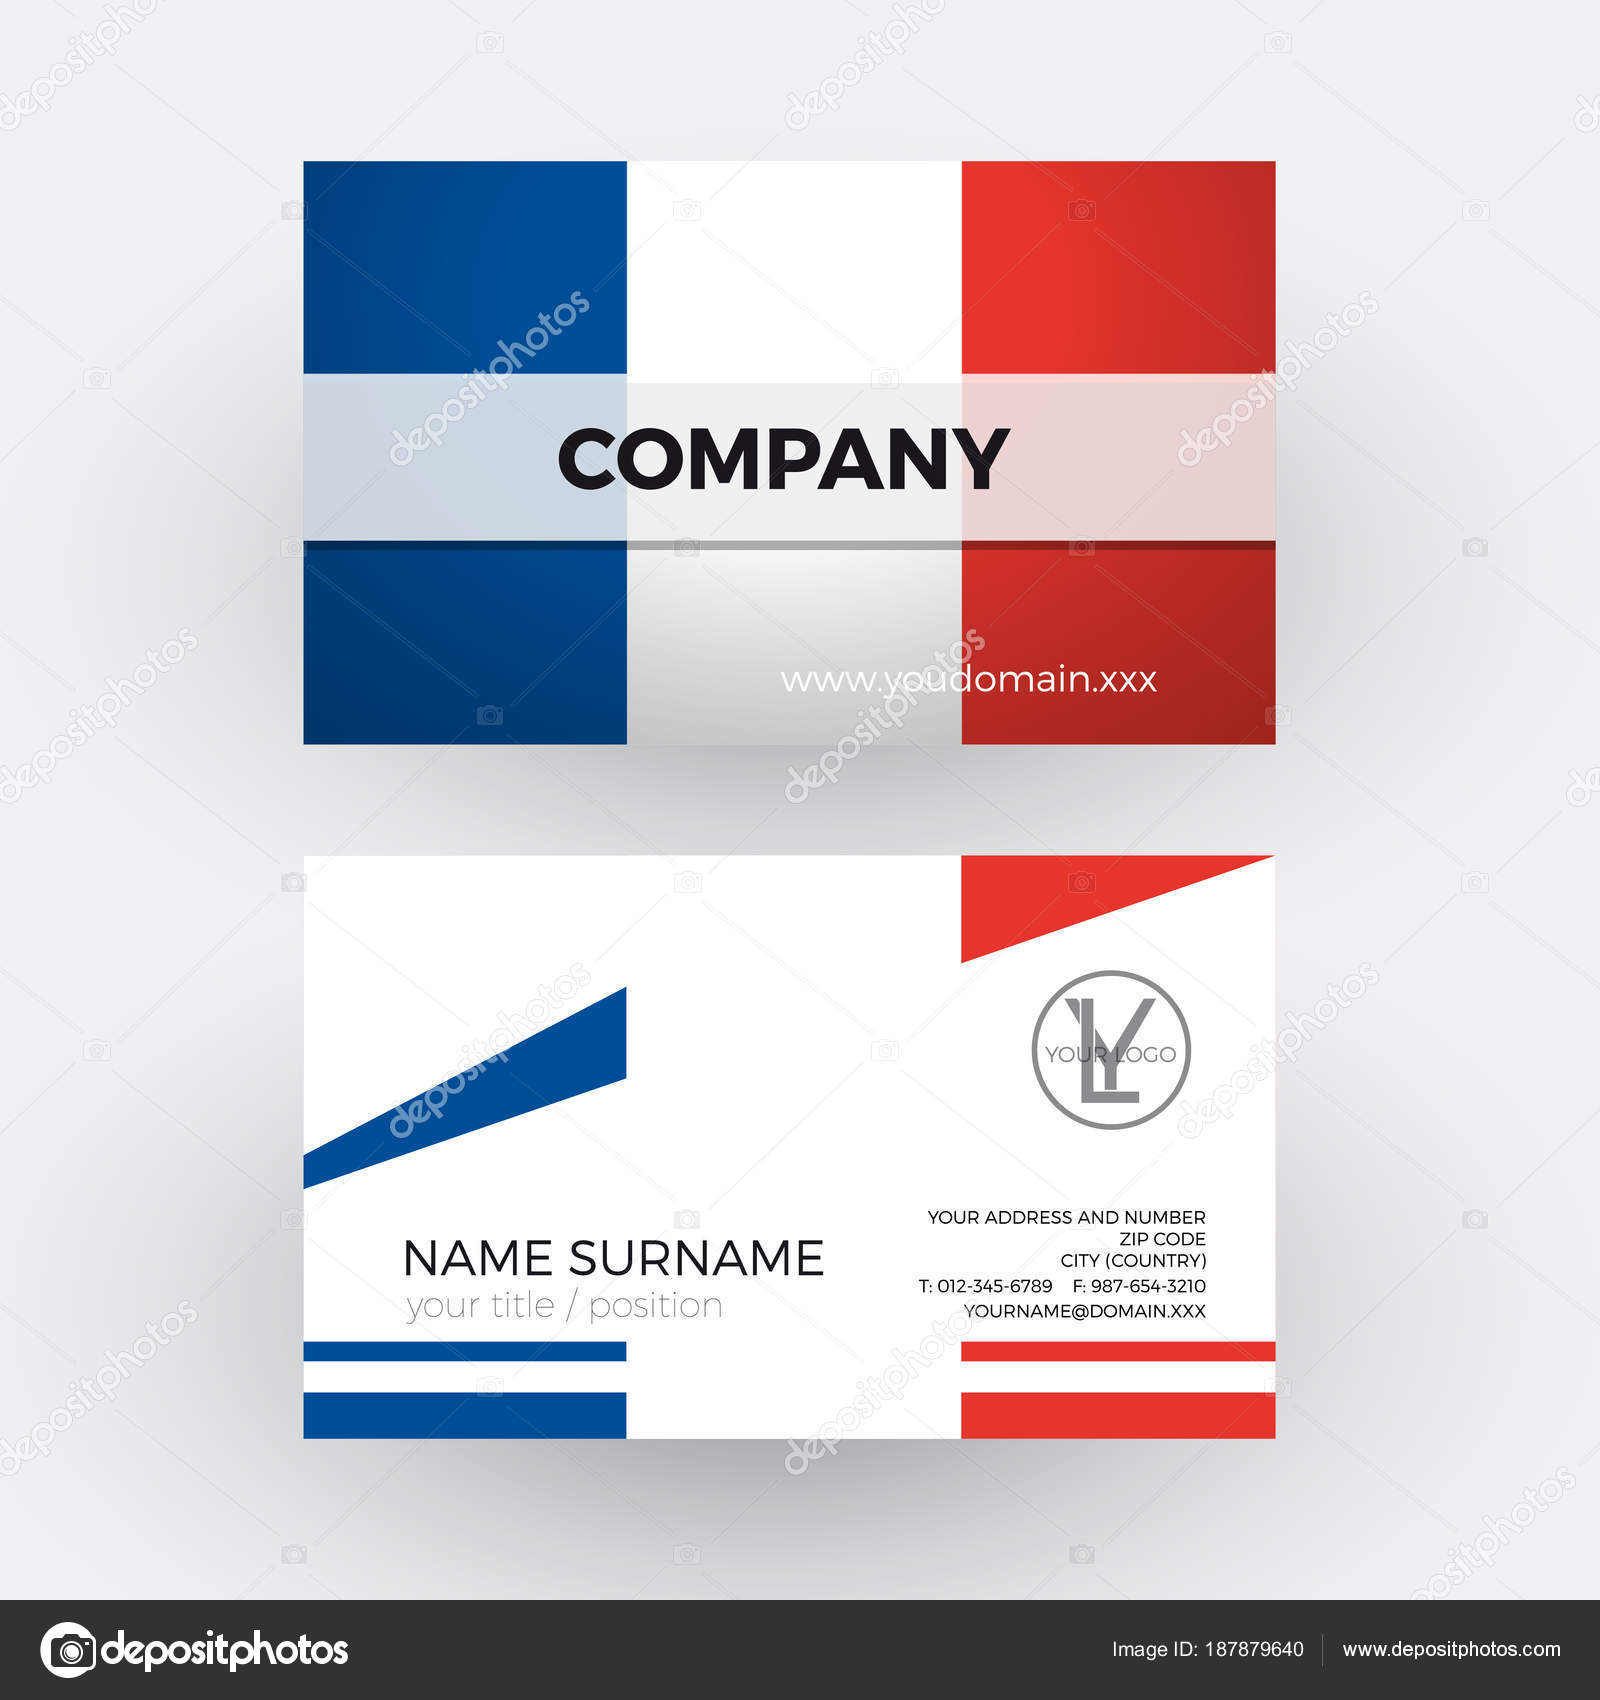 Vector abstract french flag professional business card for fran vector abstract french flag professional business card for fran stock vector colourmoves